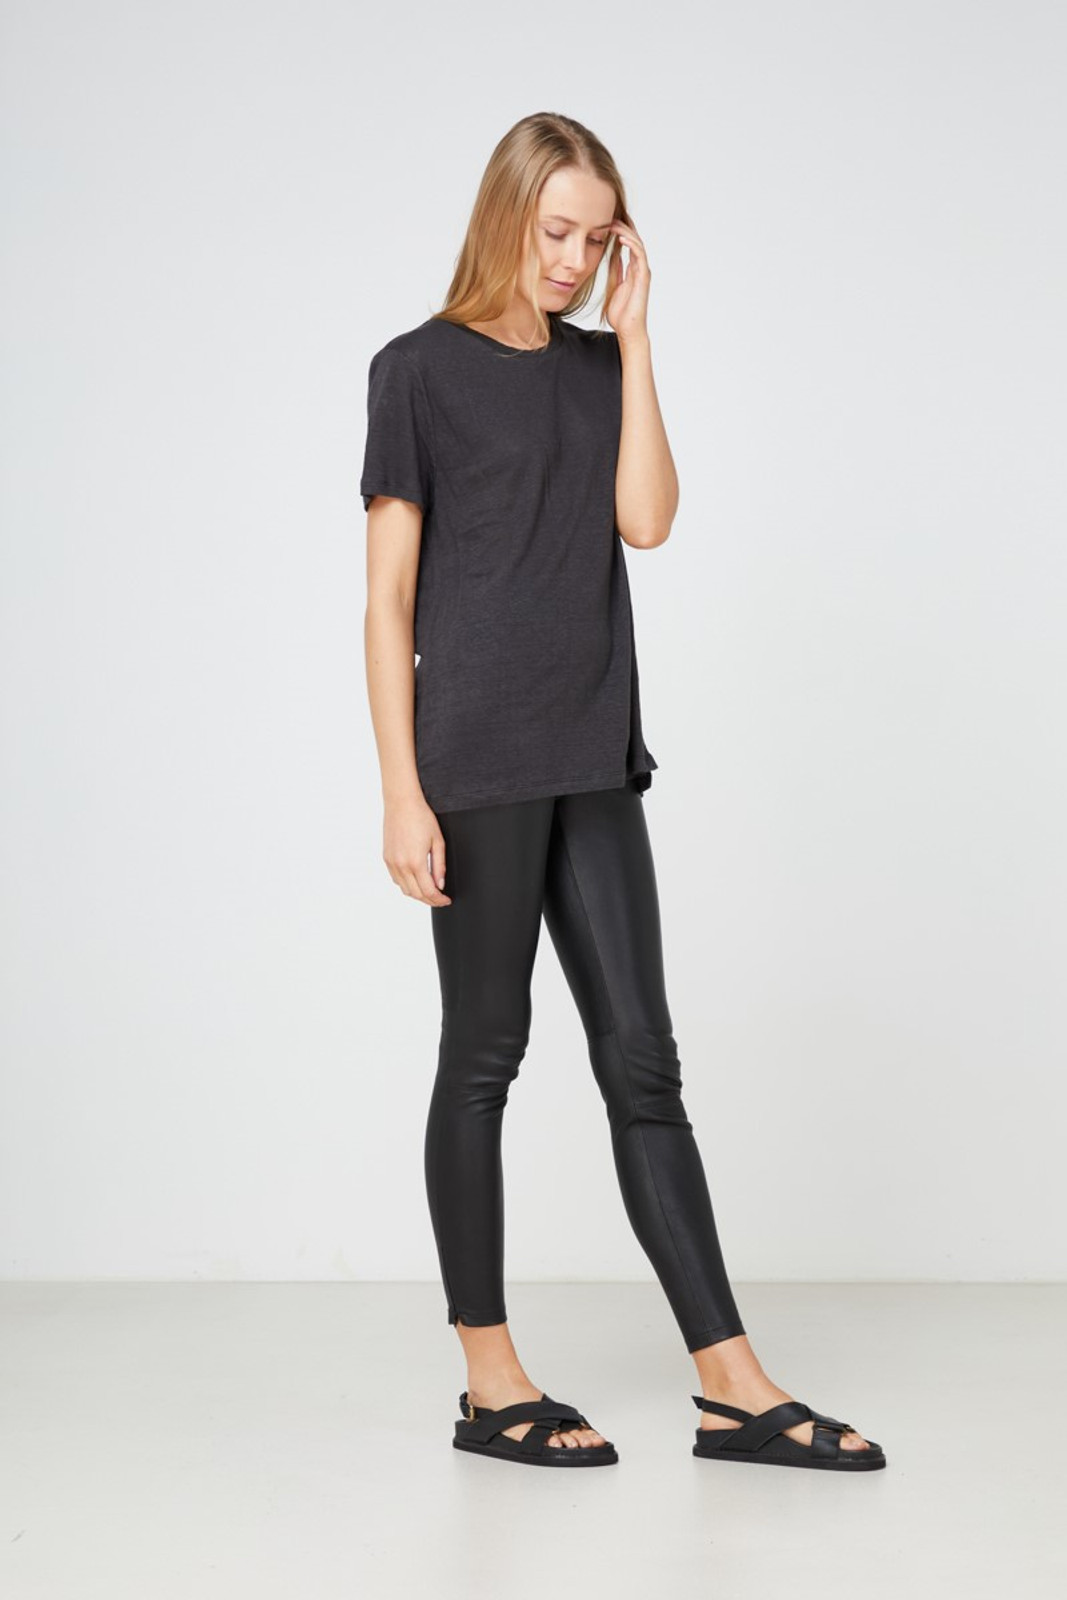 Elka Collective EC Linen Crew Neck Tee Black  3